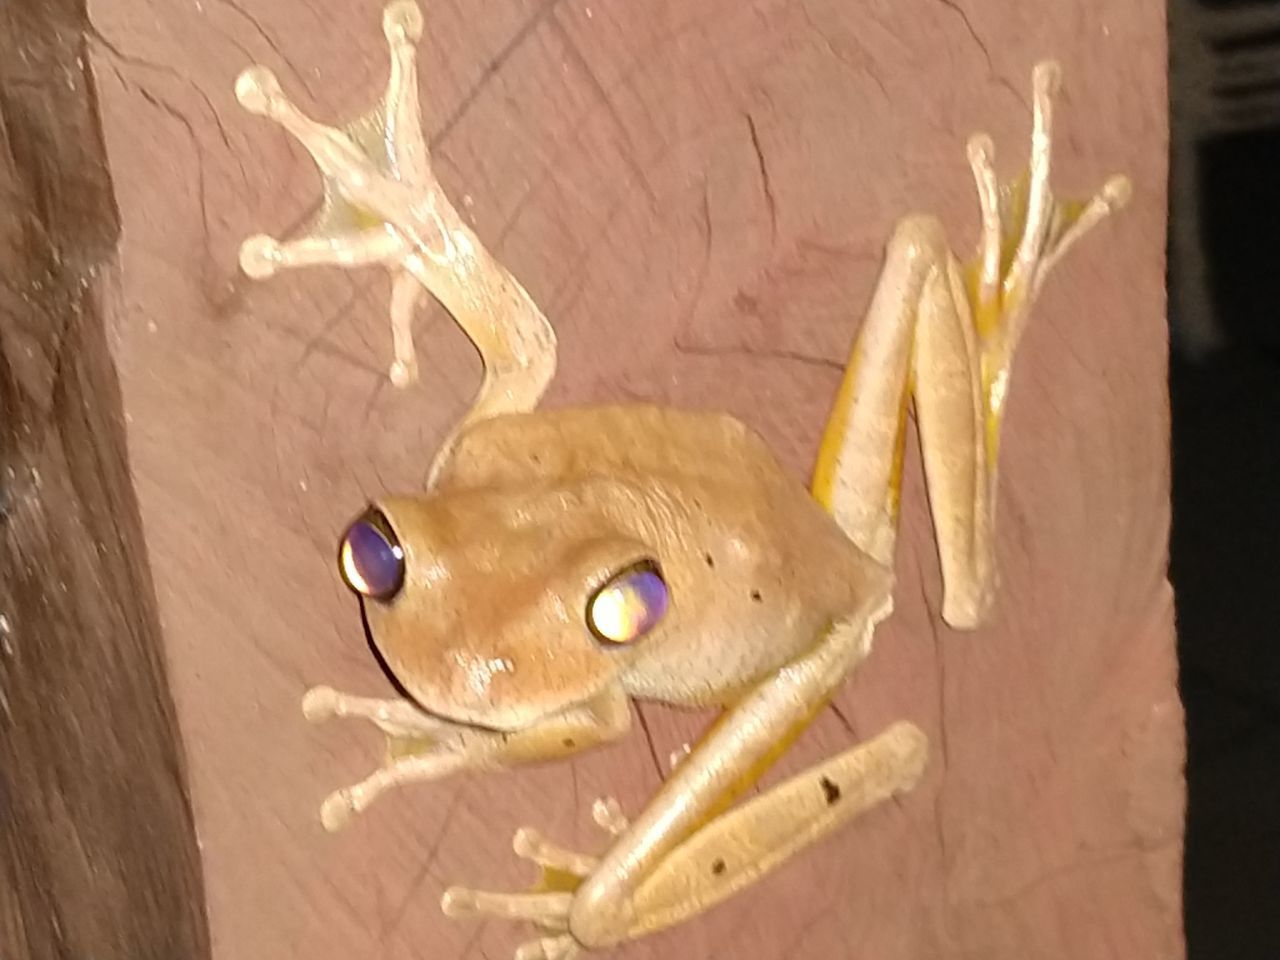 CLOSE-UP OF LIZARD ON WALL